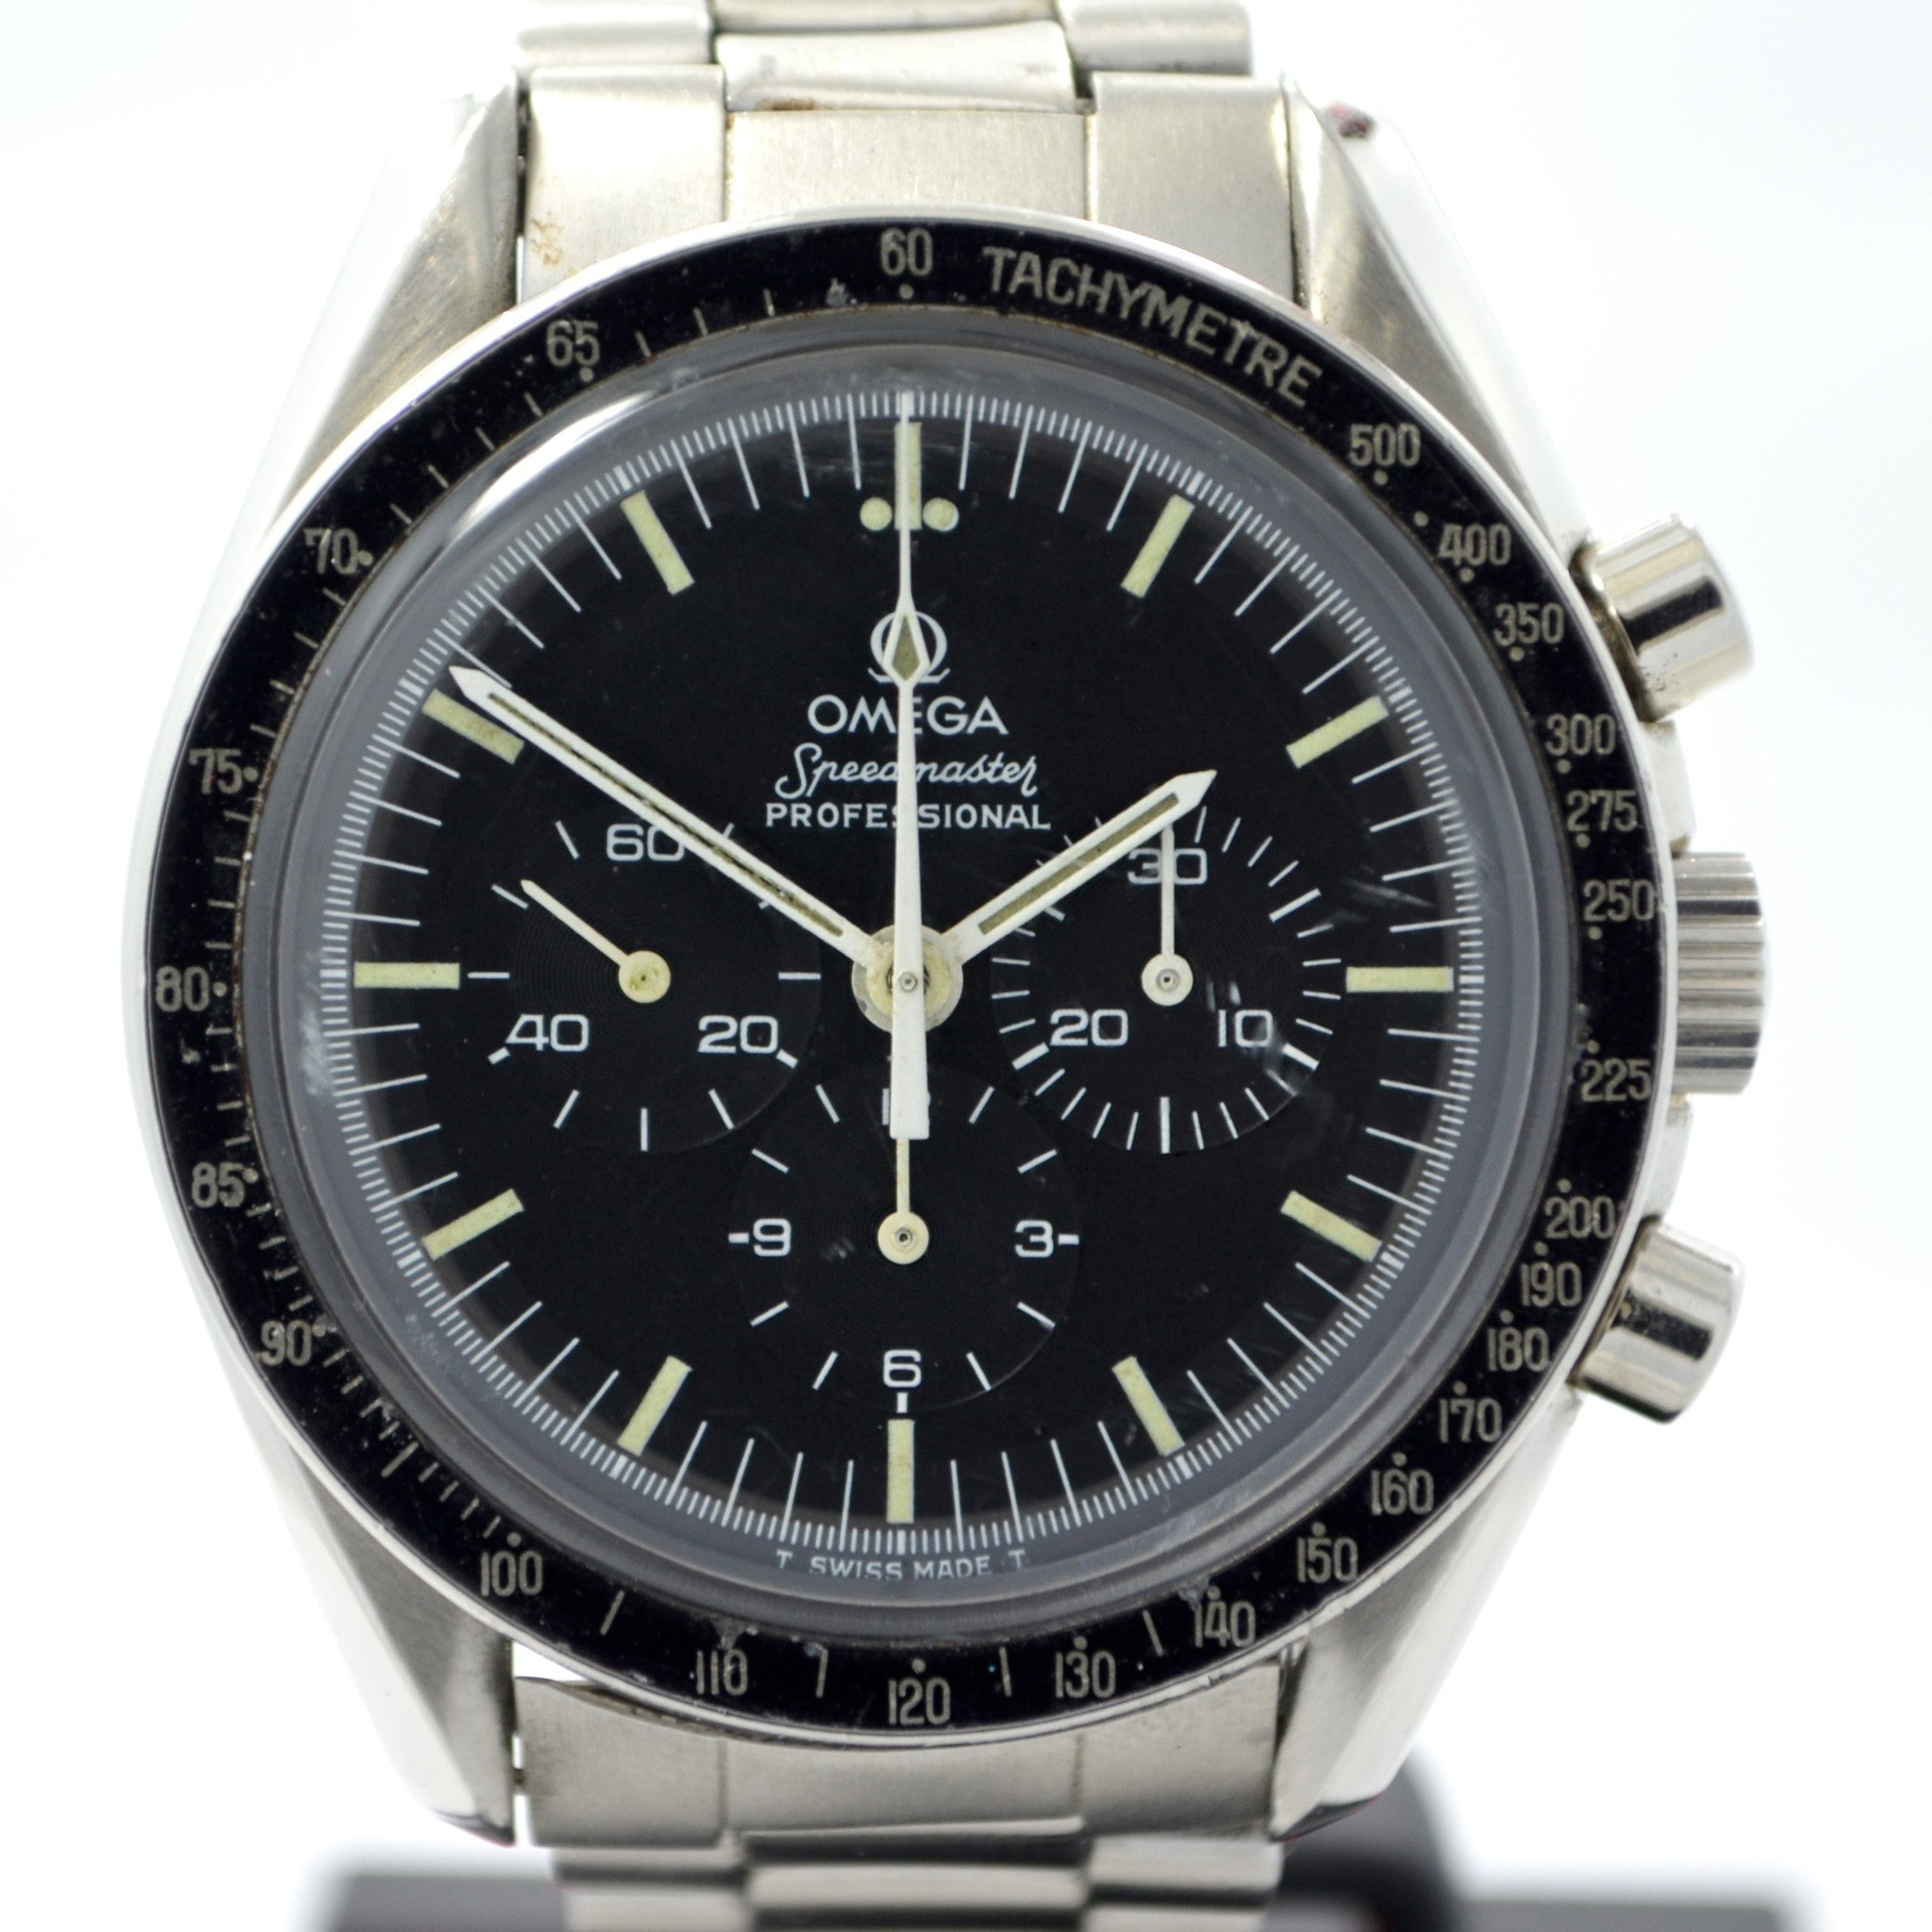 Vintage Omega Speedmaster ST 145.022 1978 Stainless Steel Chronograph Cal. 861 Watch - Hashtag Watch Company